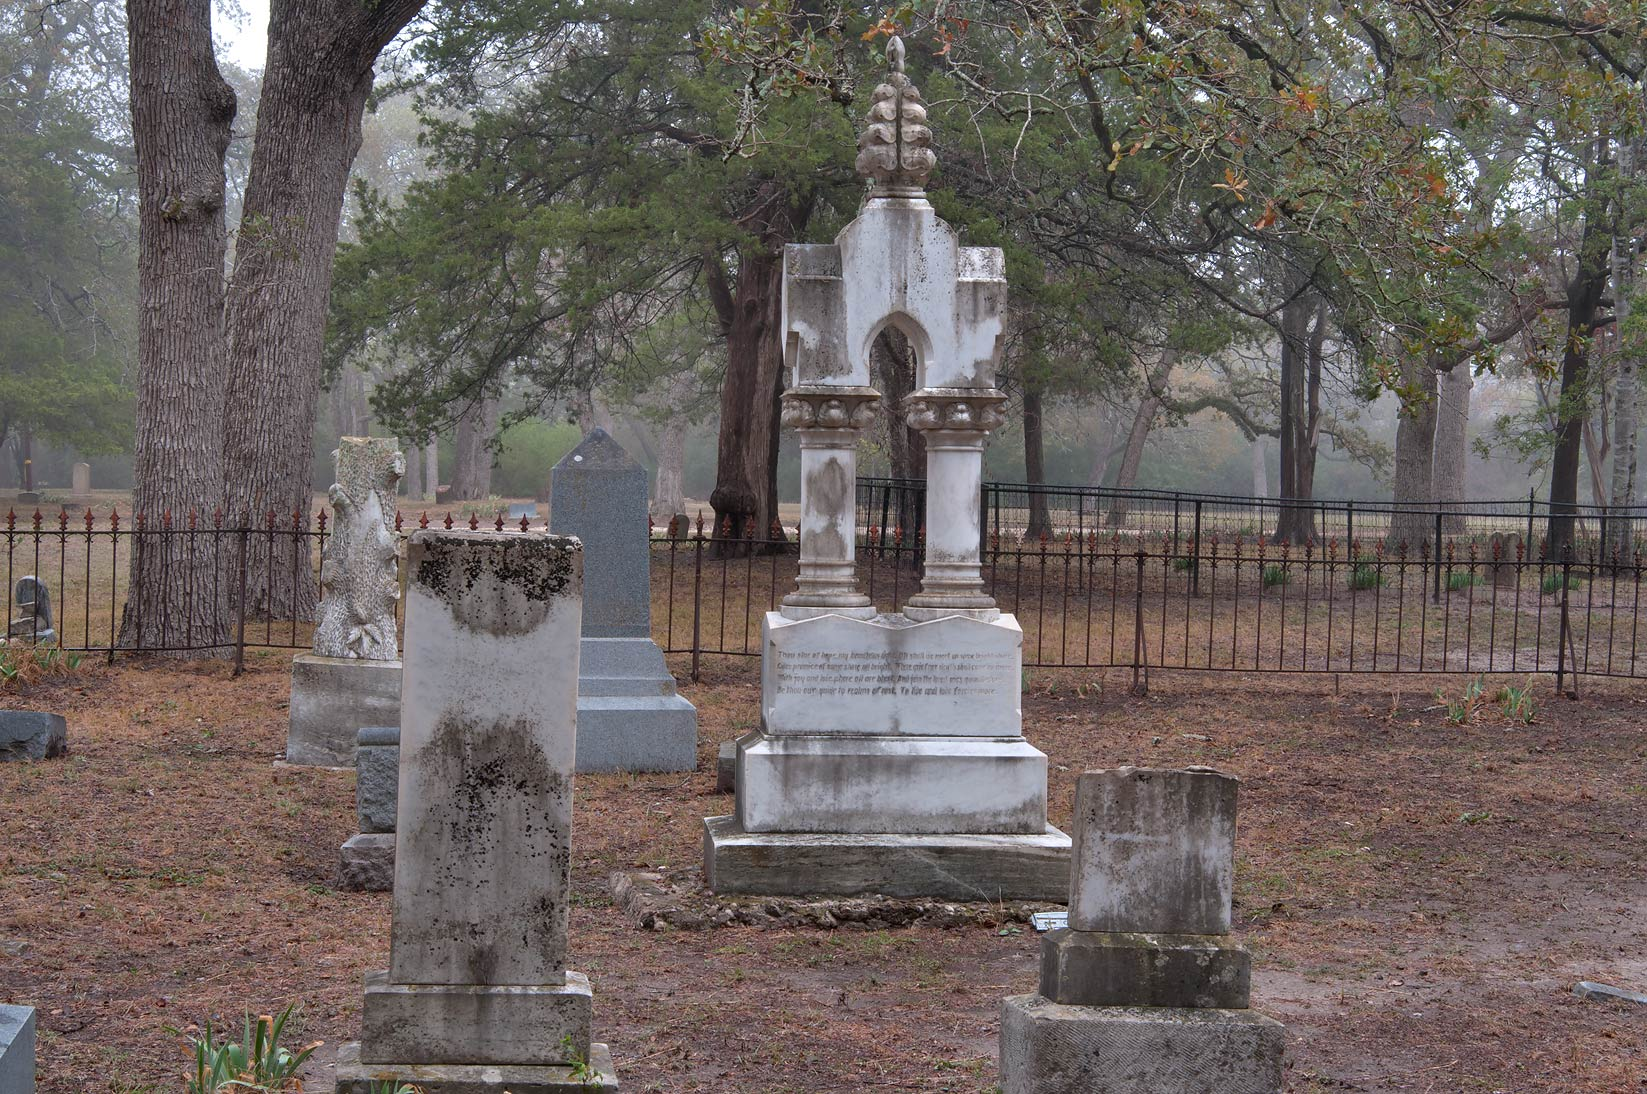 Tombs of Boonville Cemetery. Bryan, Texas